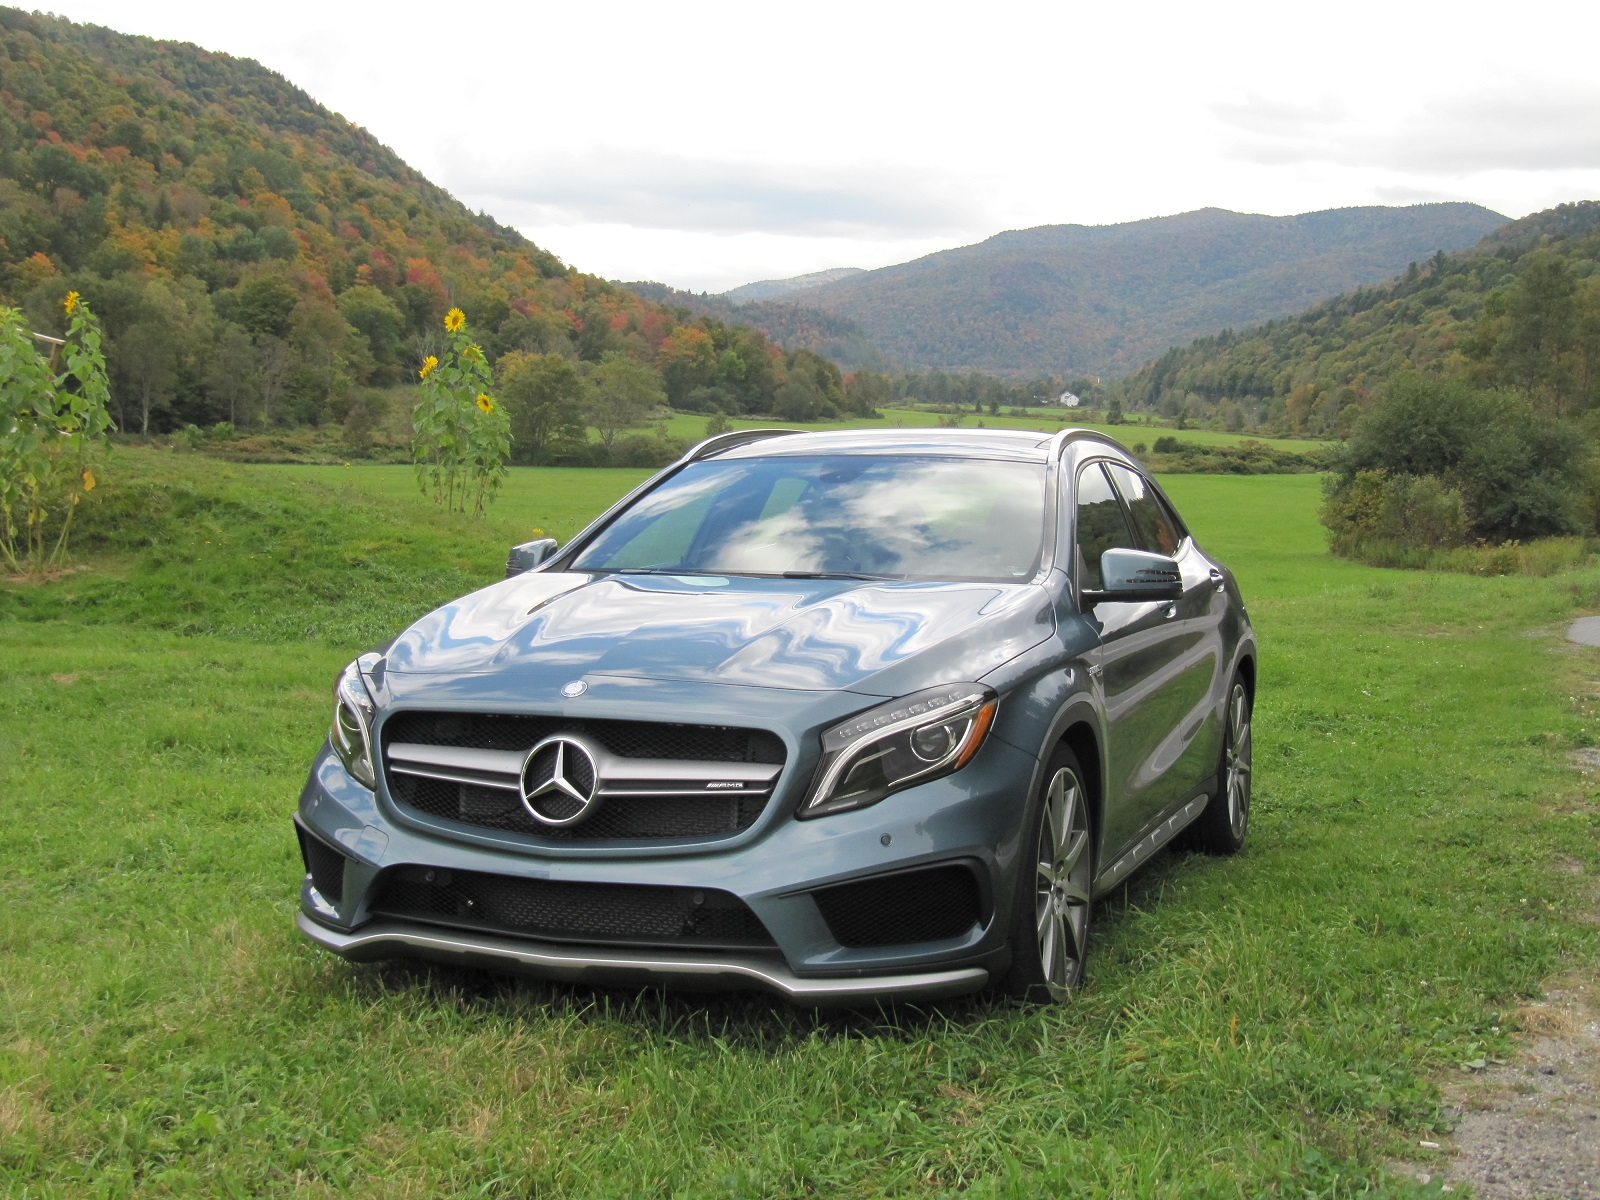 2015 mercedes benz gla45 amg first drive review. Black Bedroom Furniture Sets. Home Design Ideas